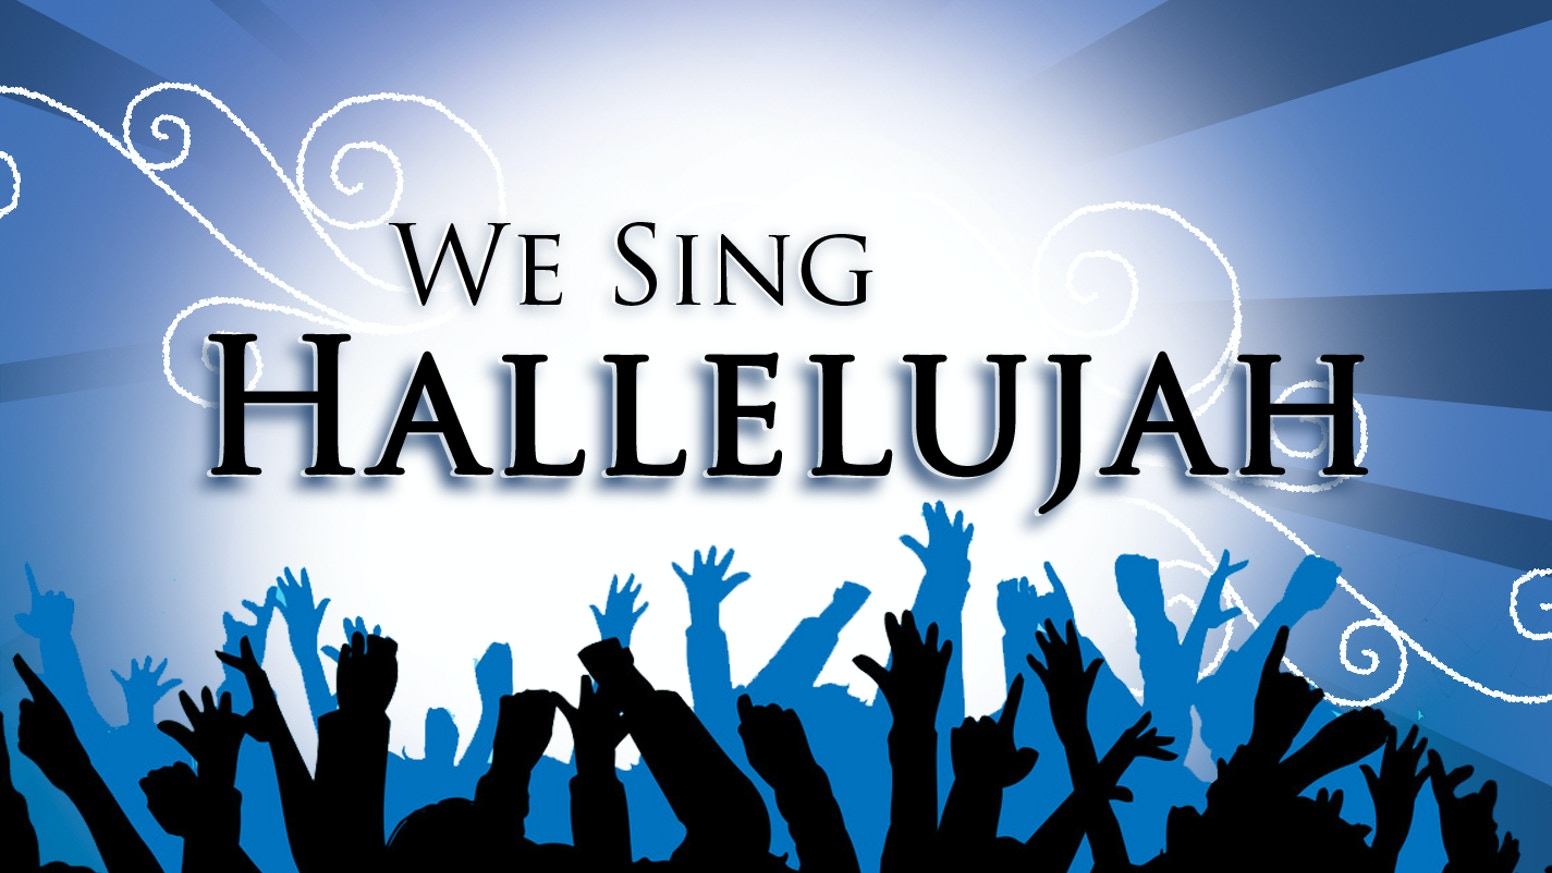 we sing hallelujah worship album by toby l baxley kickstarter